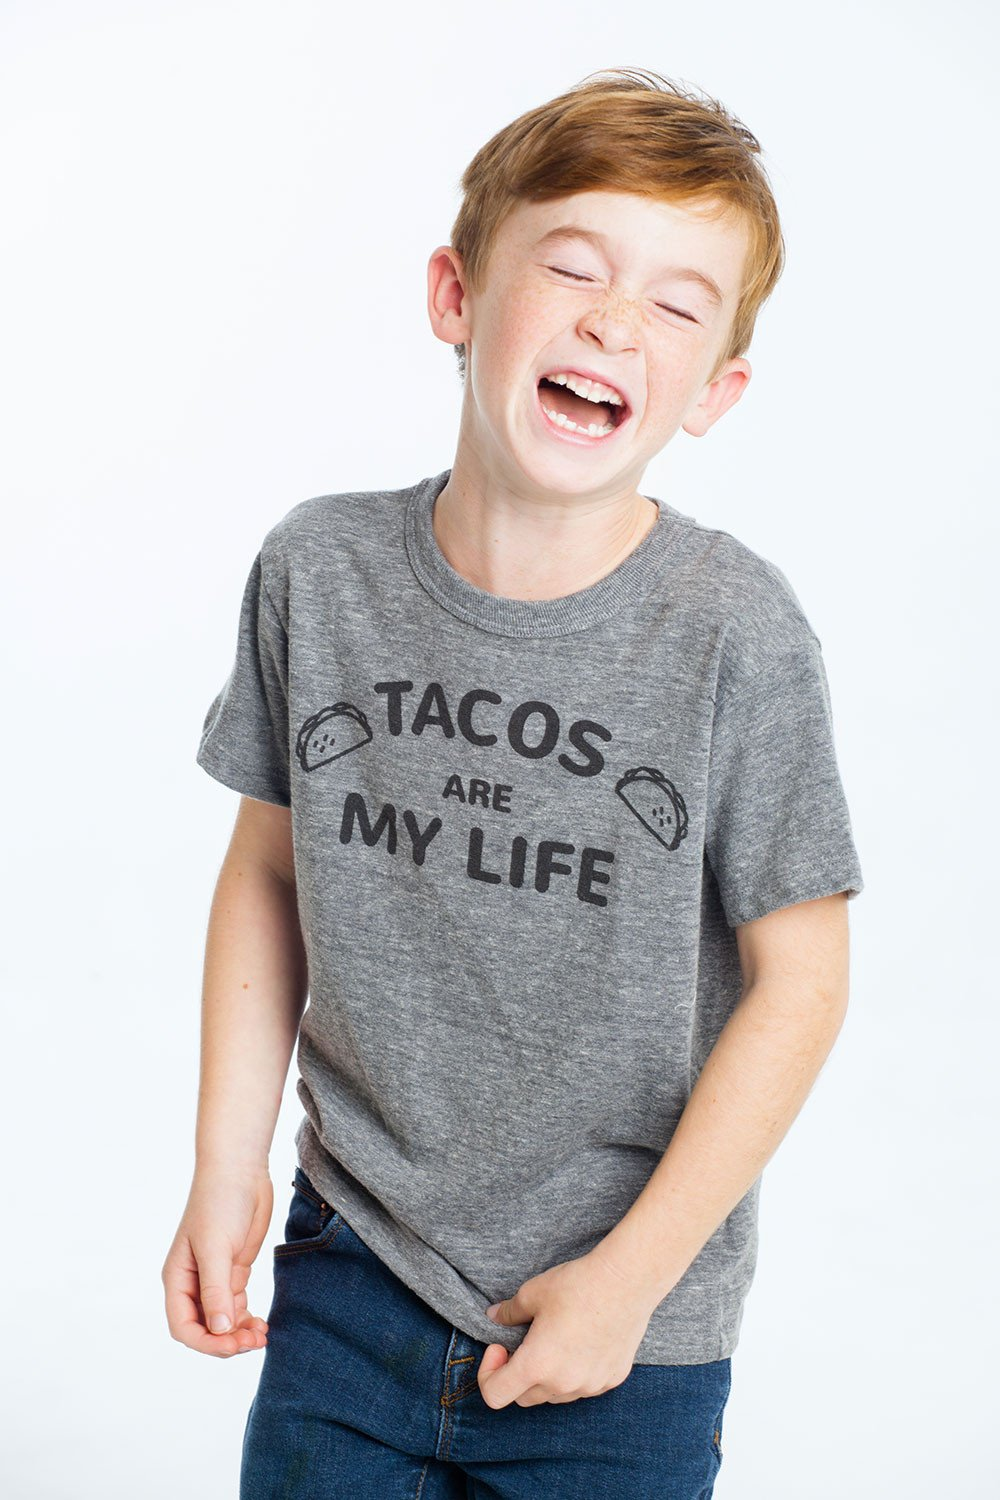 Tacos Are My Life Tee Chaser Brand, $29-.jpg